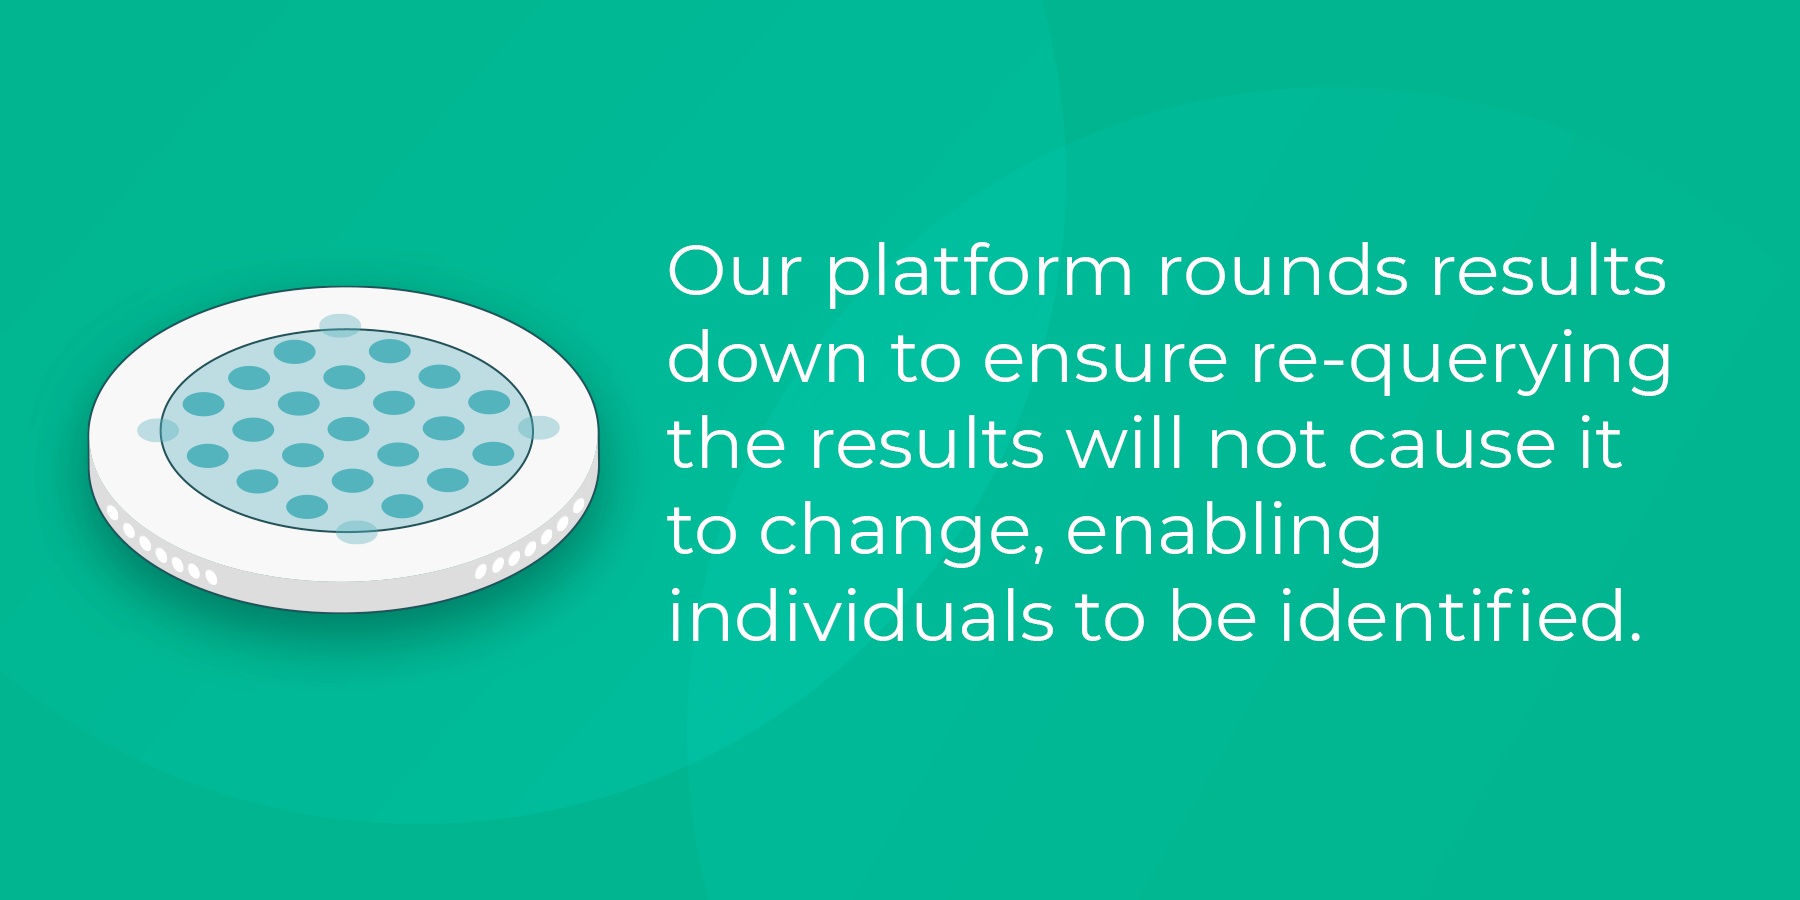 Our platform rounds results down